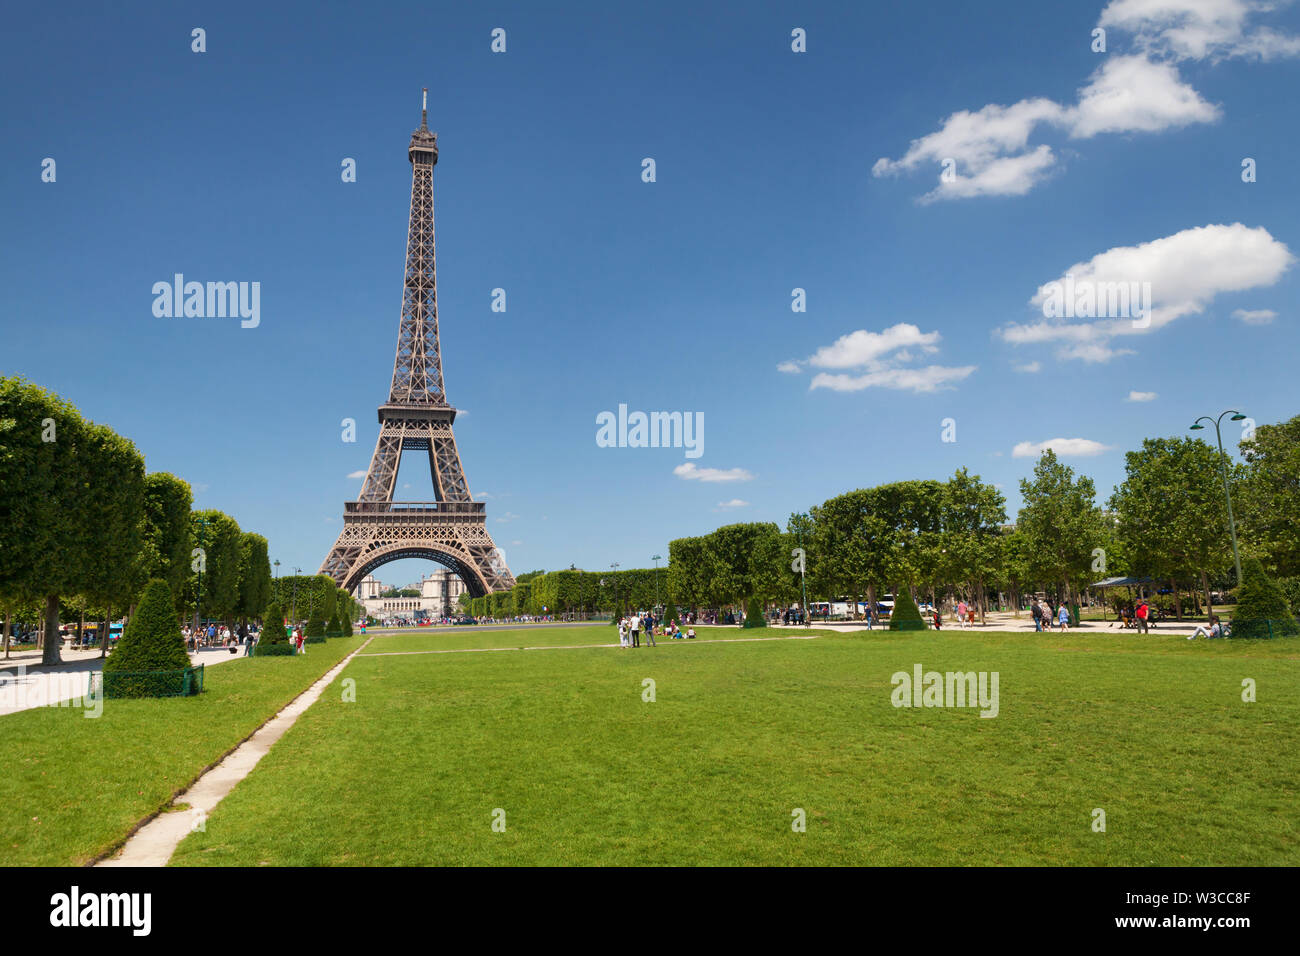 Eiffel tower and Mars field meadow, Paris. France. Tourist greeting card - Stock Image